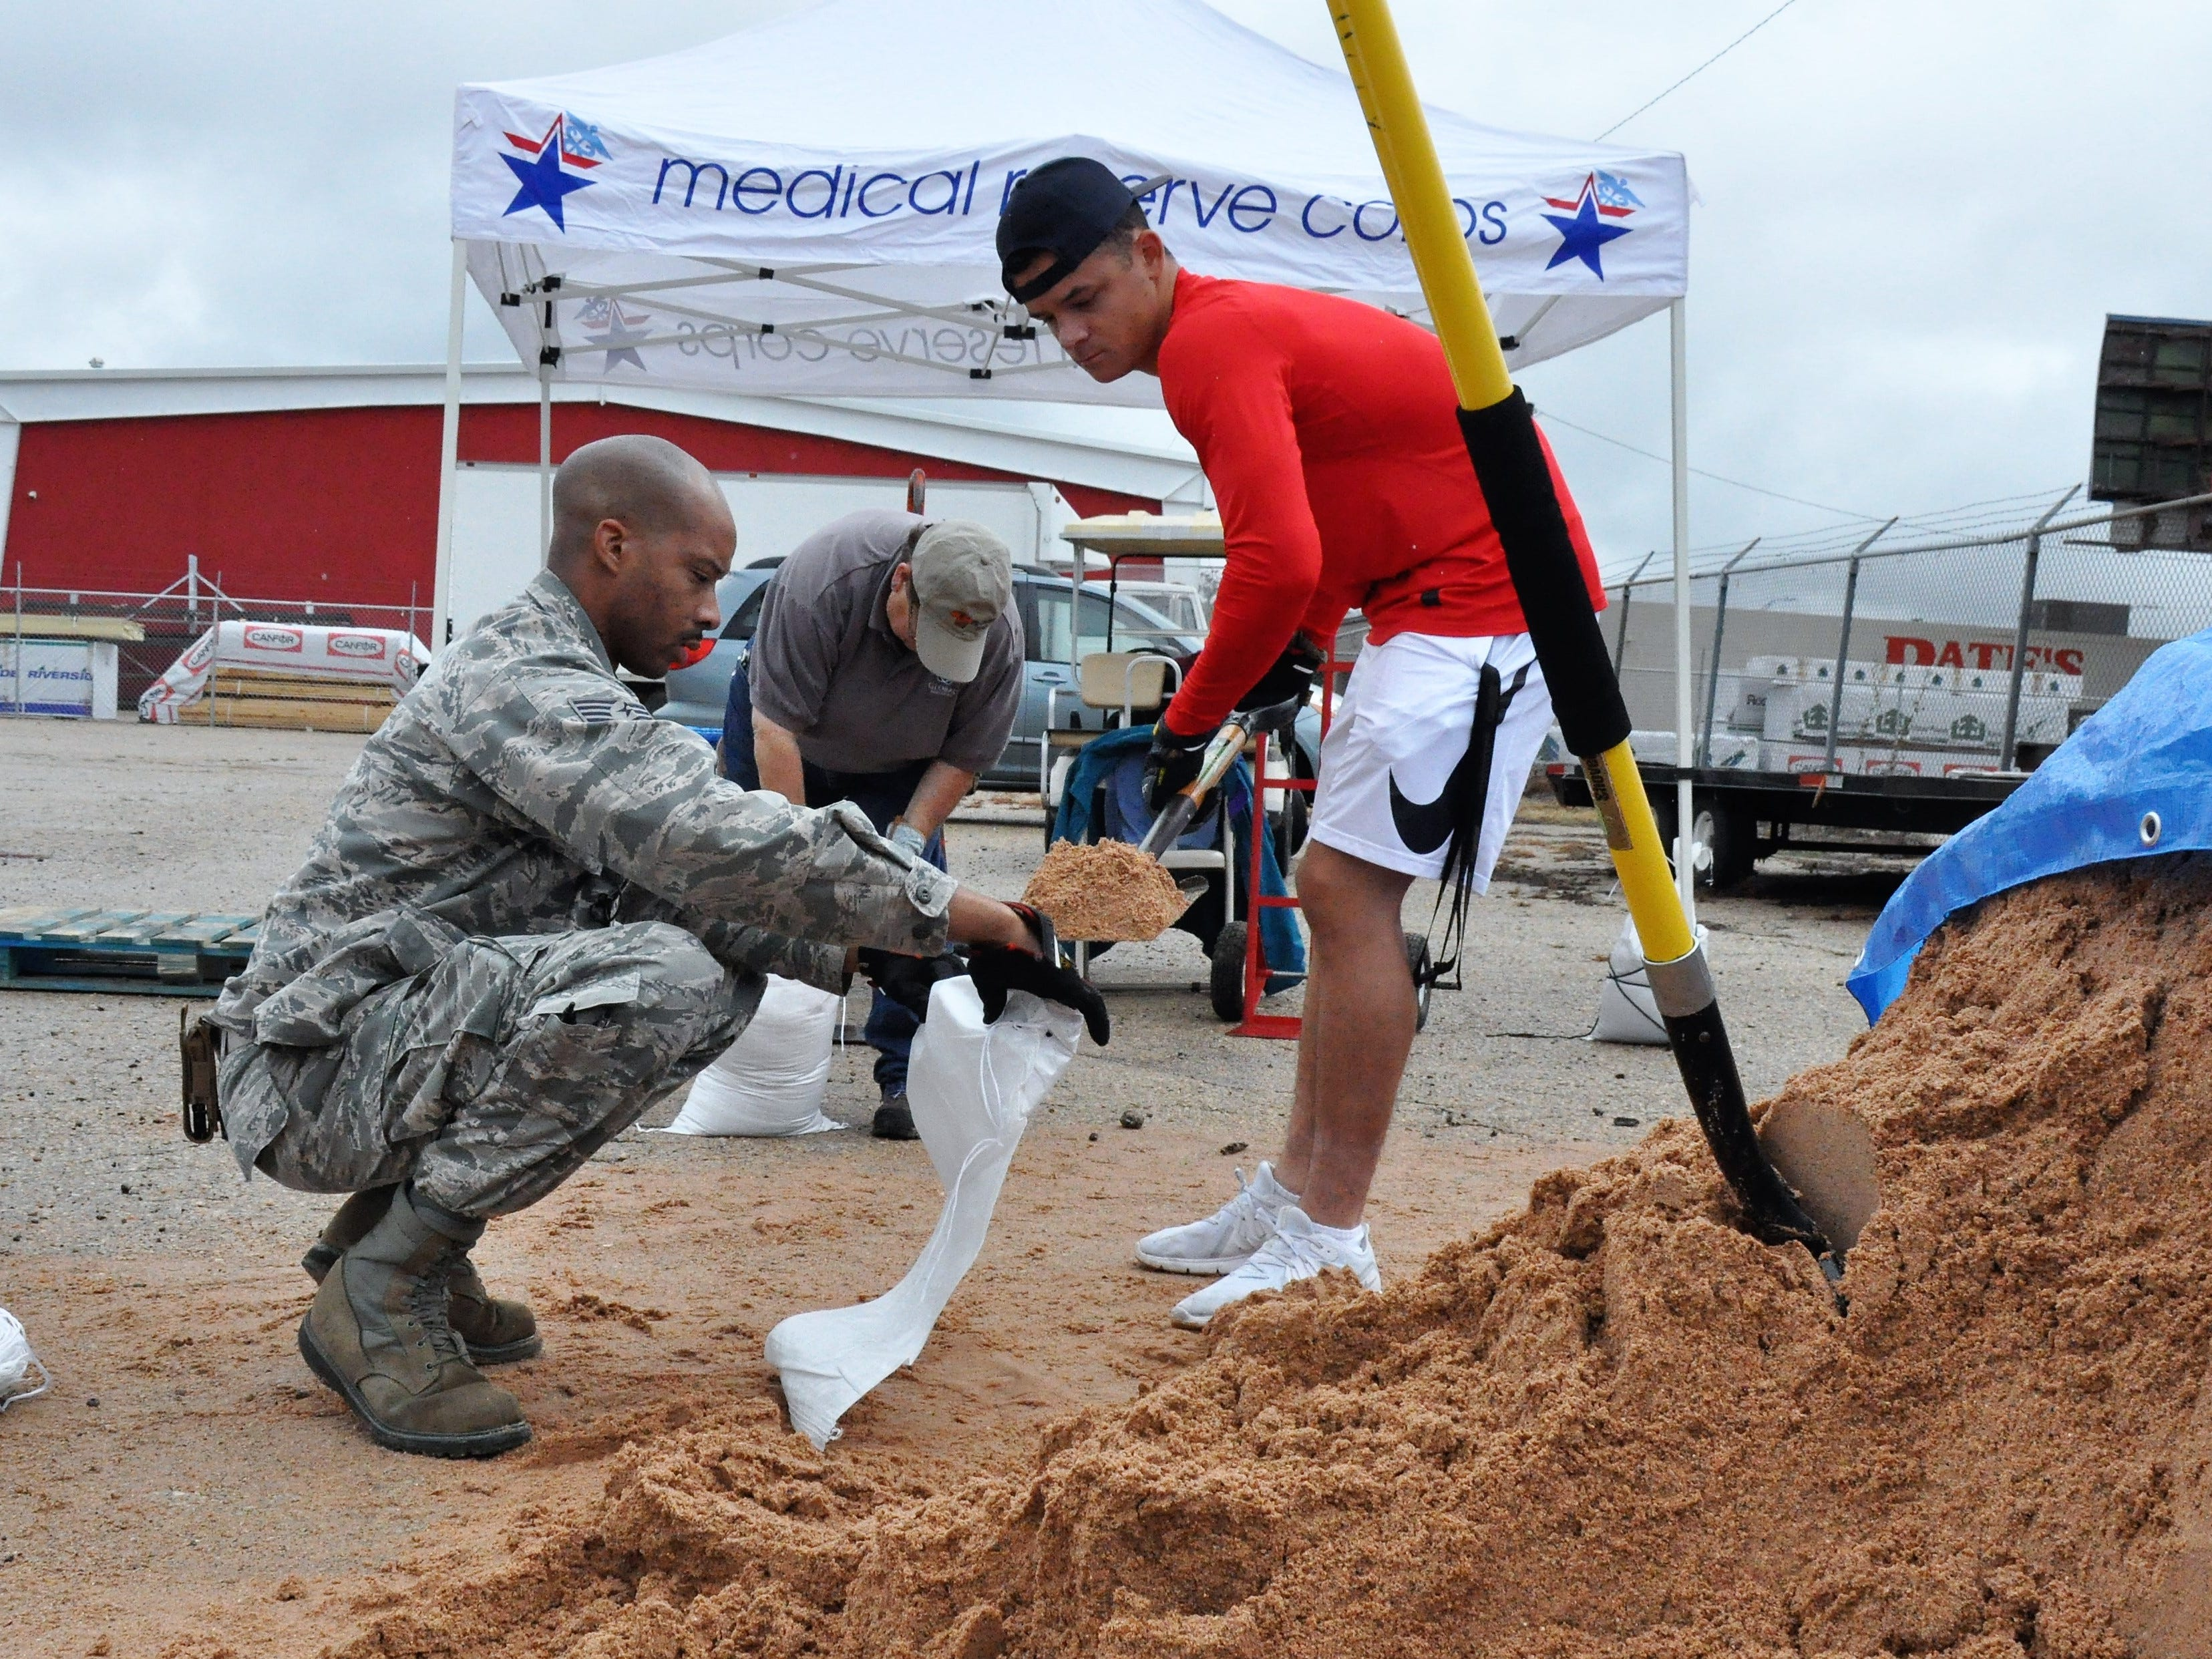 Staff Sgt. Audric Simmons, left, and Airman 1st Class Jacob Arbanas, right, from Dyess AIr Force Base help Esther Kissell, director of logistics and disaster services at Global Samaritan Resources, fill sandbags on Friday, Oct. 19, 2018.